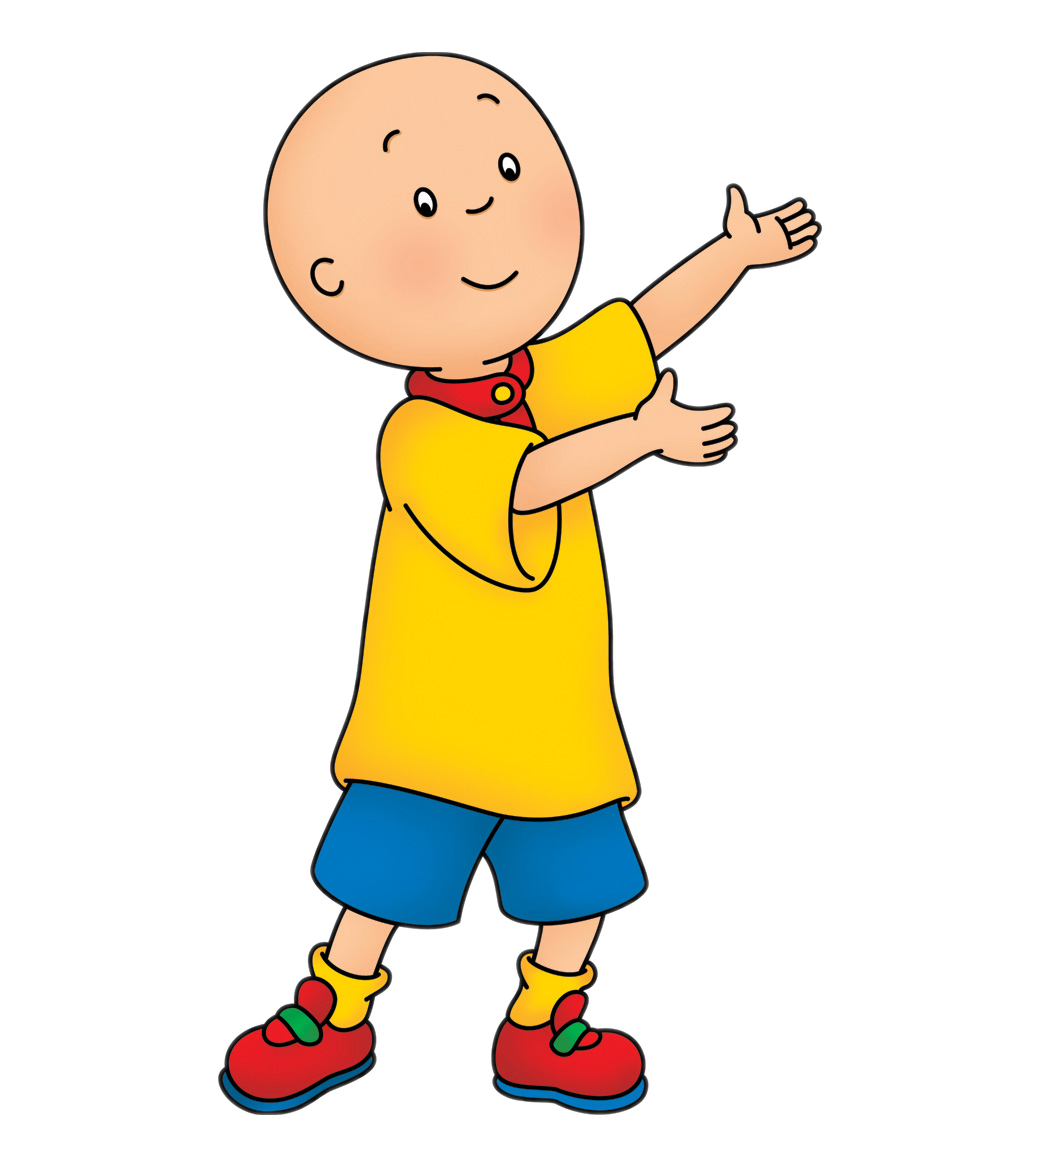 cartoon characters caillou png pack revised rh nickjrcharacters blogspot com caillou clipart